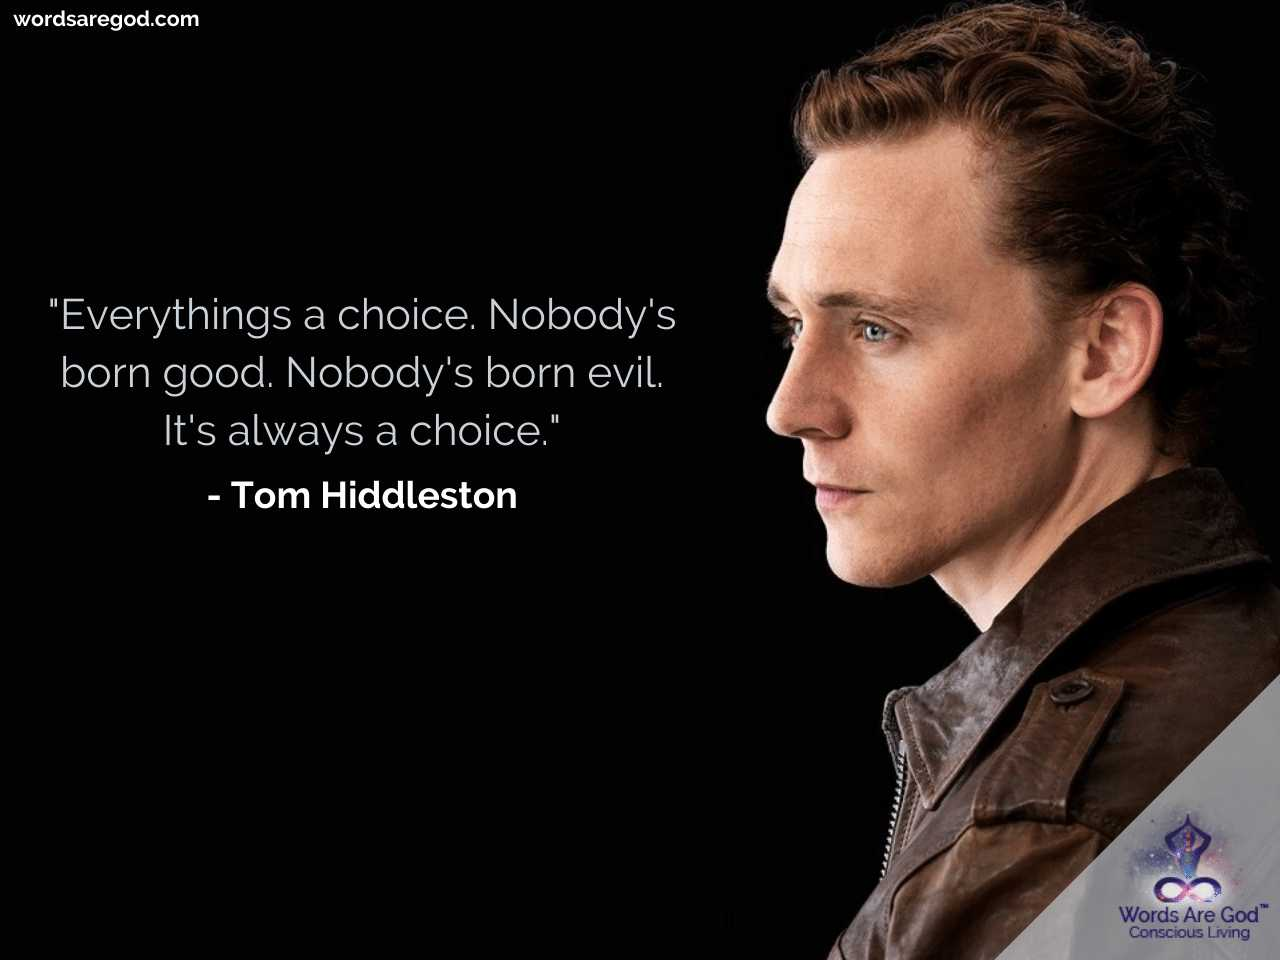 Tom Hiddleston Life Quotes by Tom Hiddleston